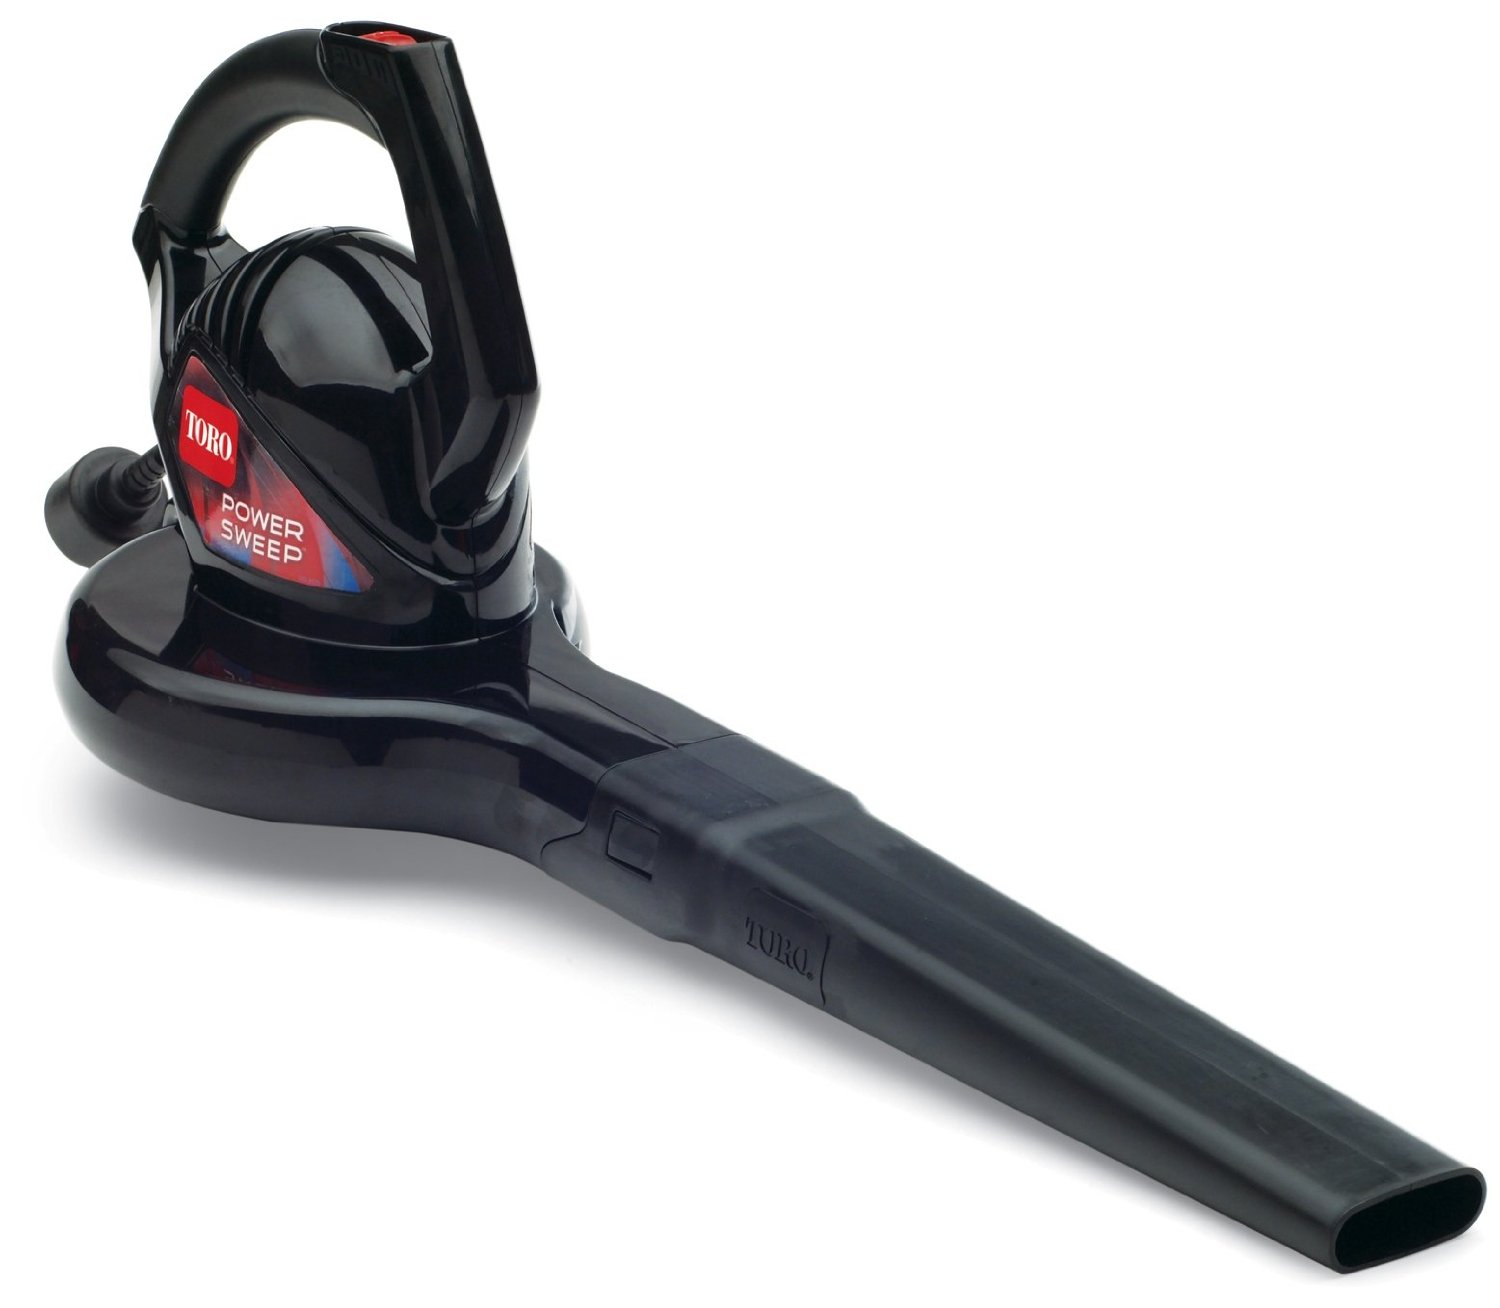 Review of Toro 51585 Power Sweep 7 amp 2-Speed Electric Blower